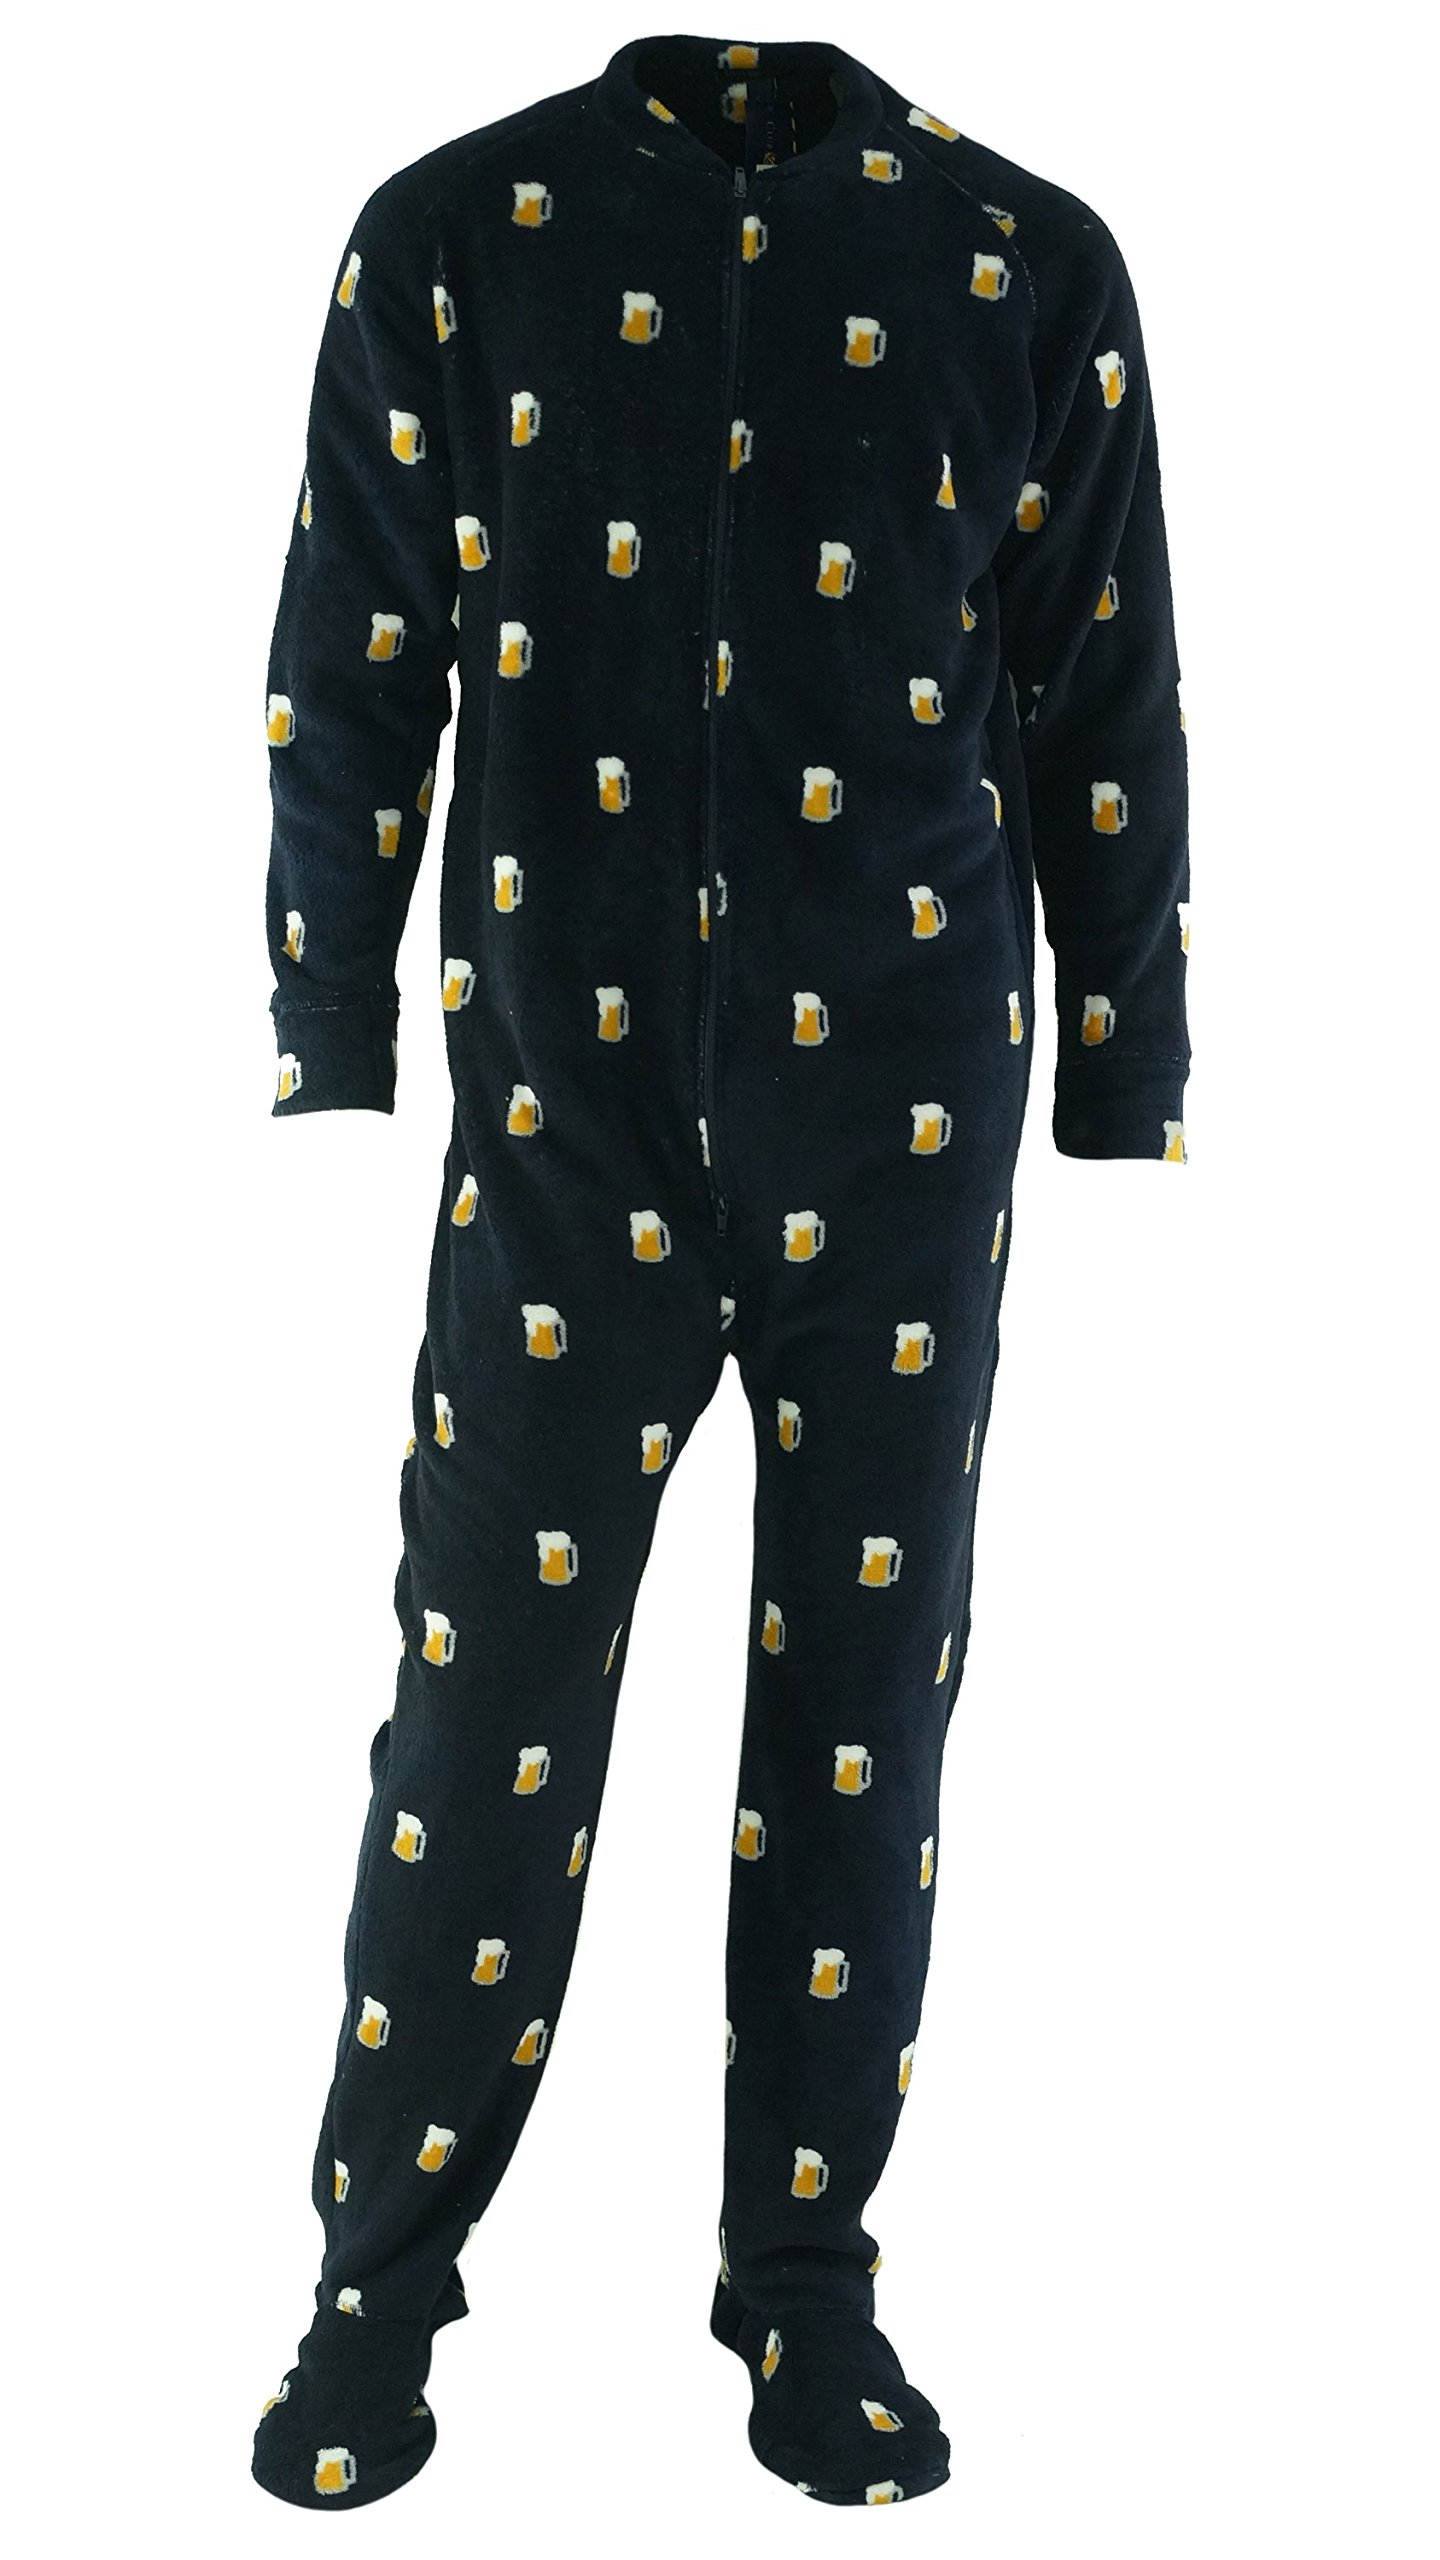 Men's Sleepwear, Beer Mug Print Fleece Footie Pajamas